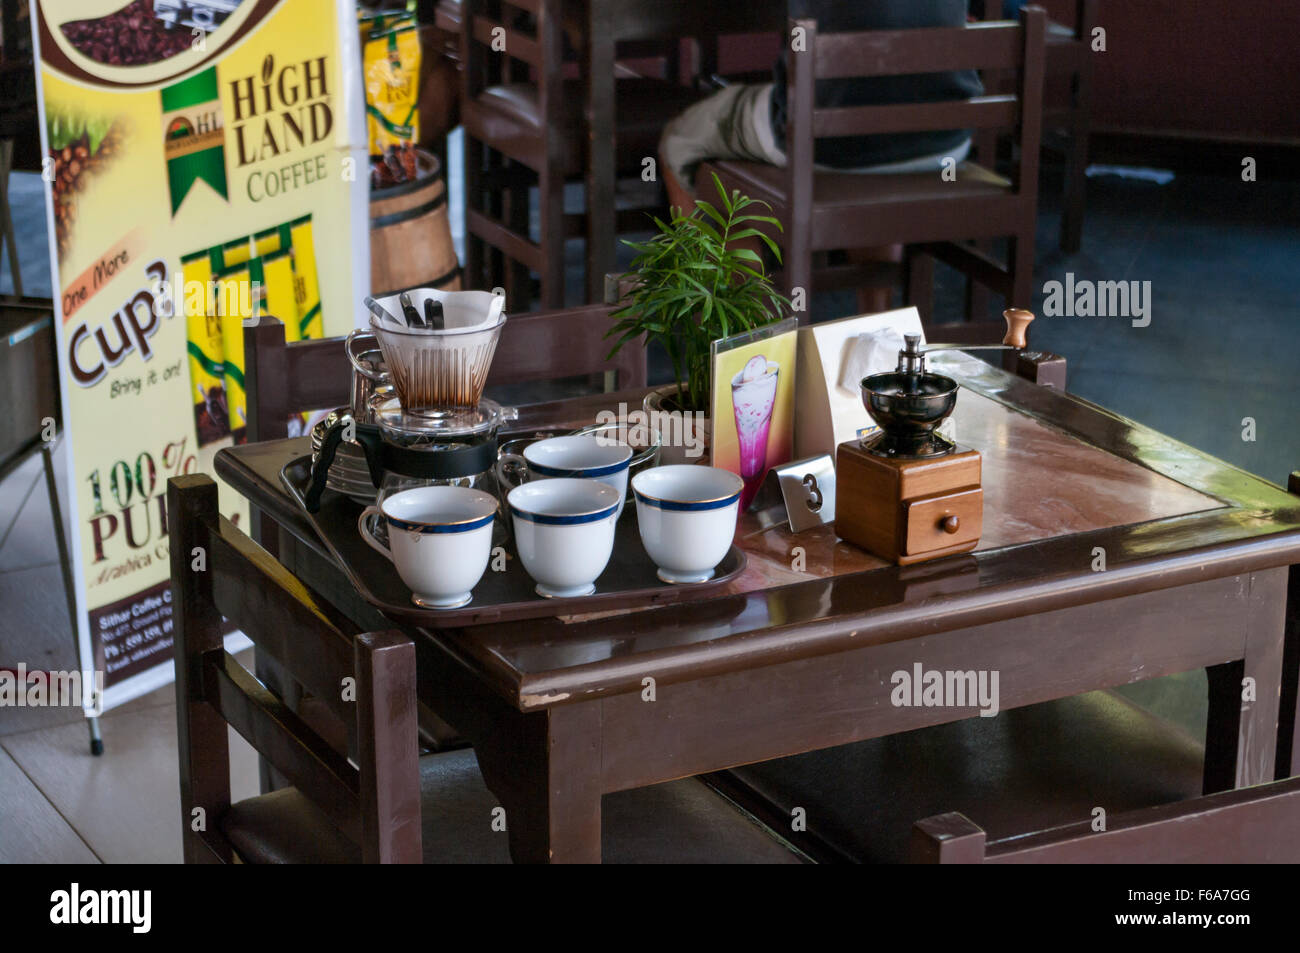 Set to prepare freshly brewed coffee in a cafe in Pyin Oo Lwin, Myanmar, consisting of cups, a coffee grinder and - Stock Image